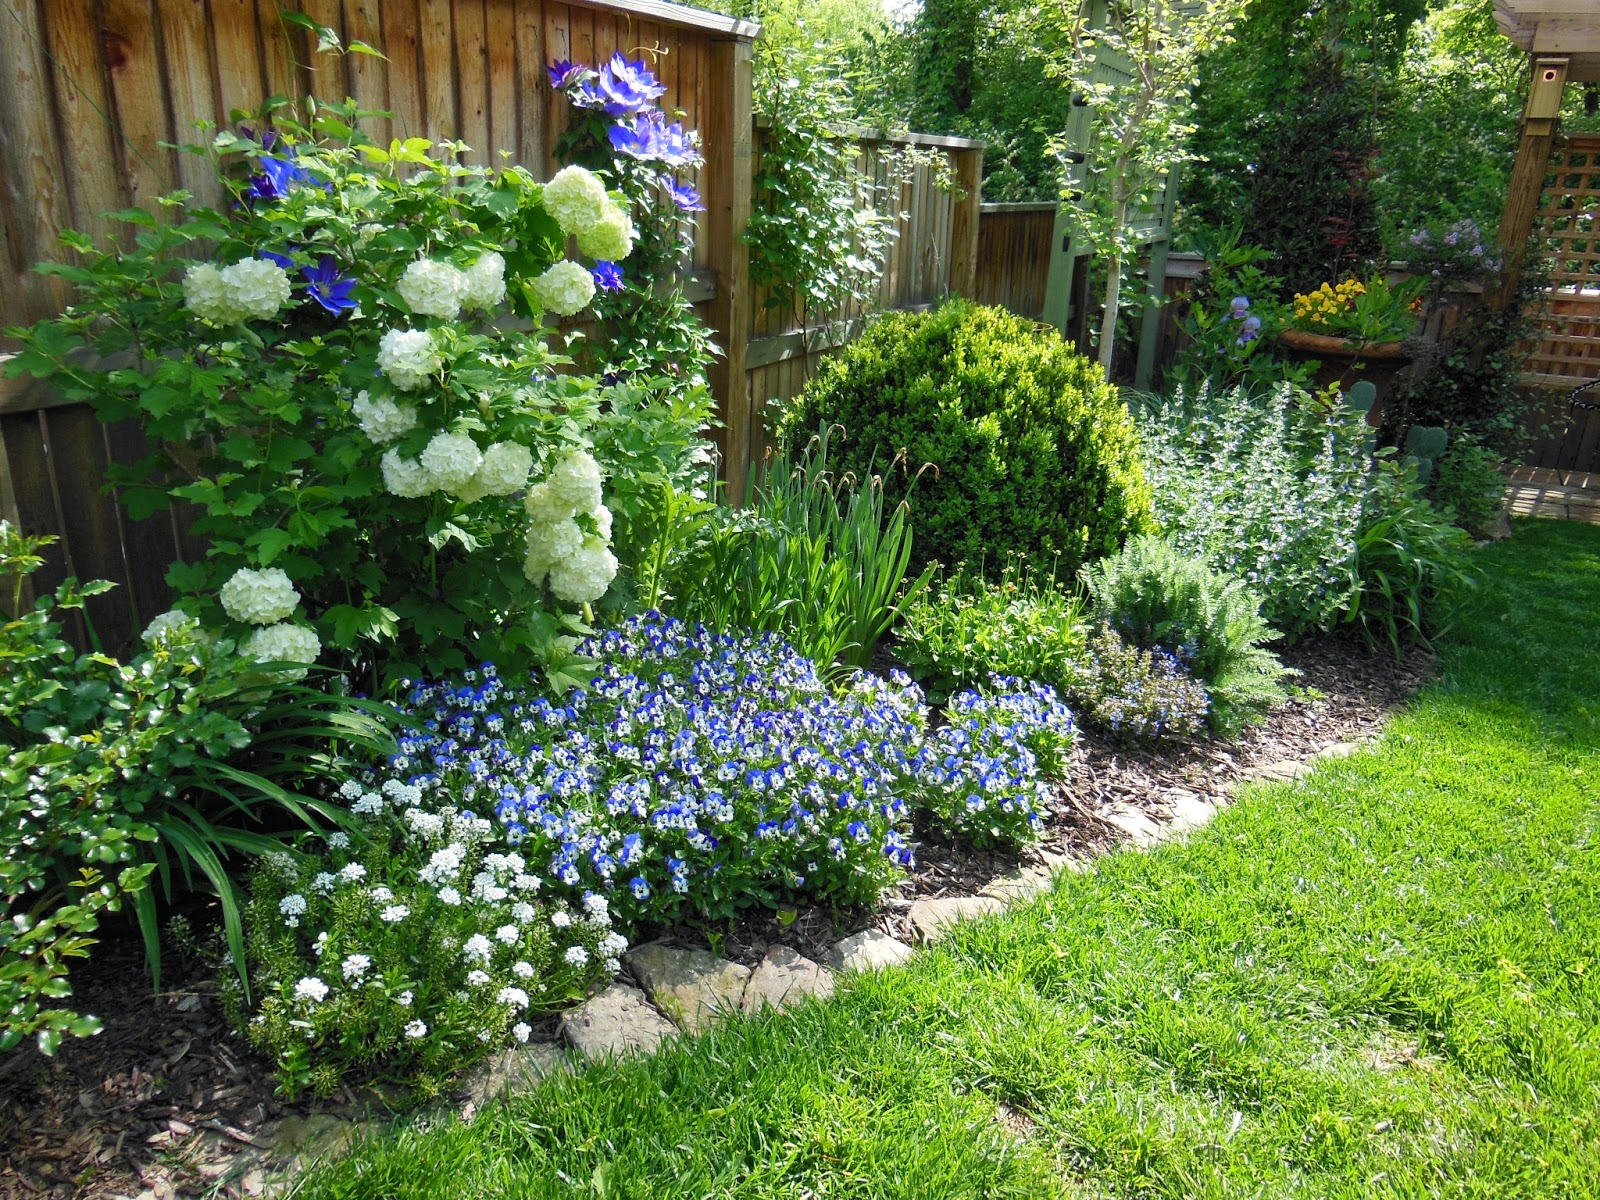 Irish cottage garden lavender blue garden design for Irish garden designs